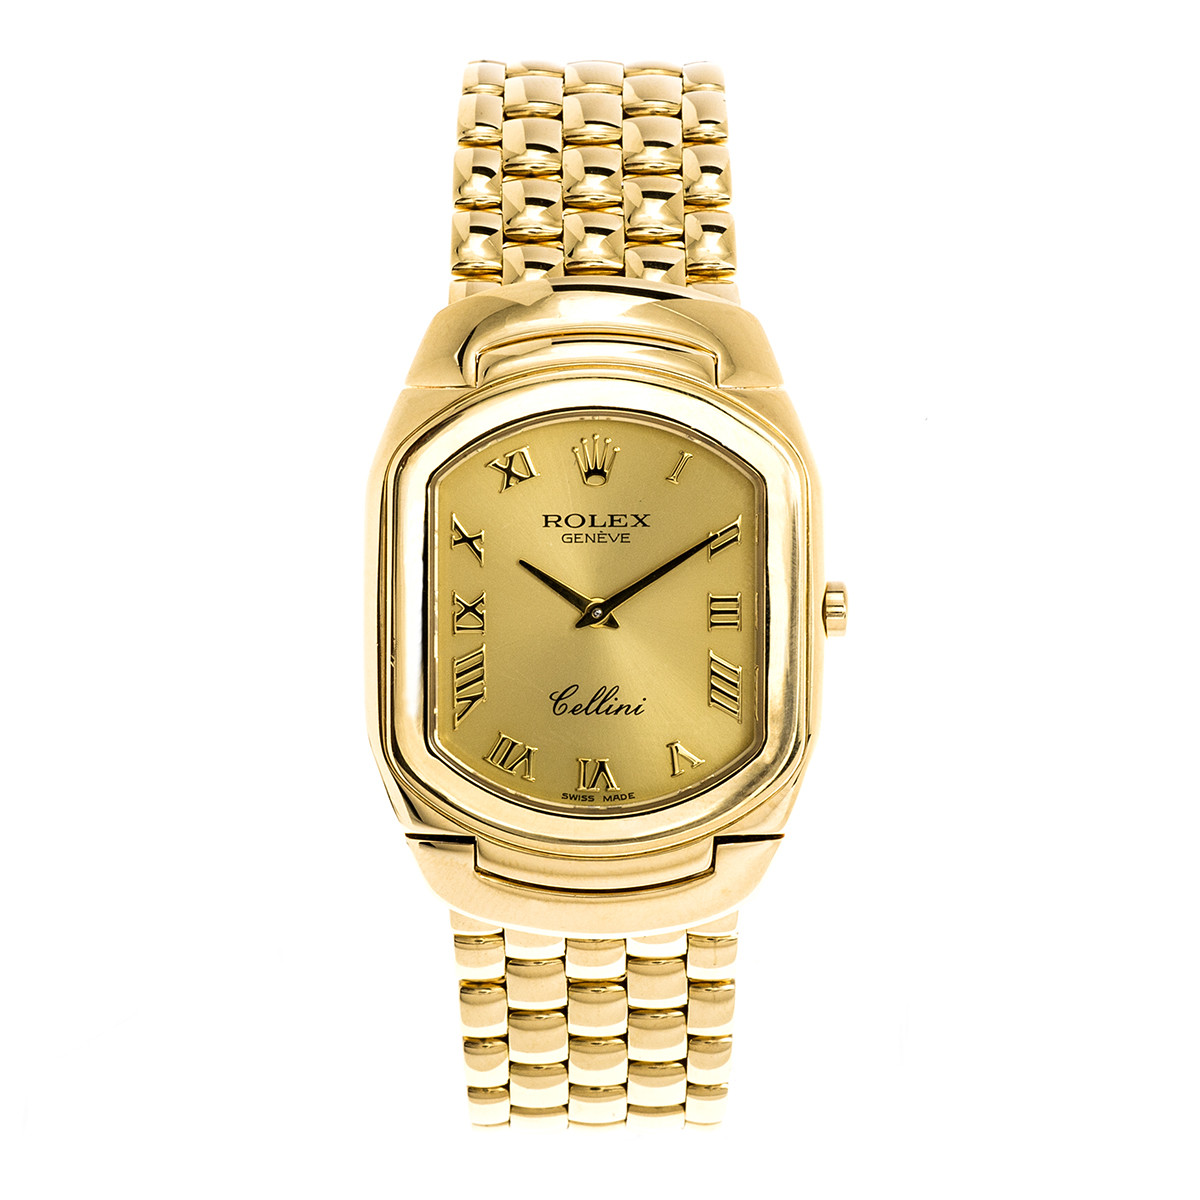 Preowned Men's 18K Gold Rolex Cellini